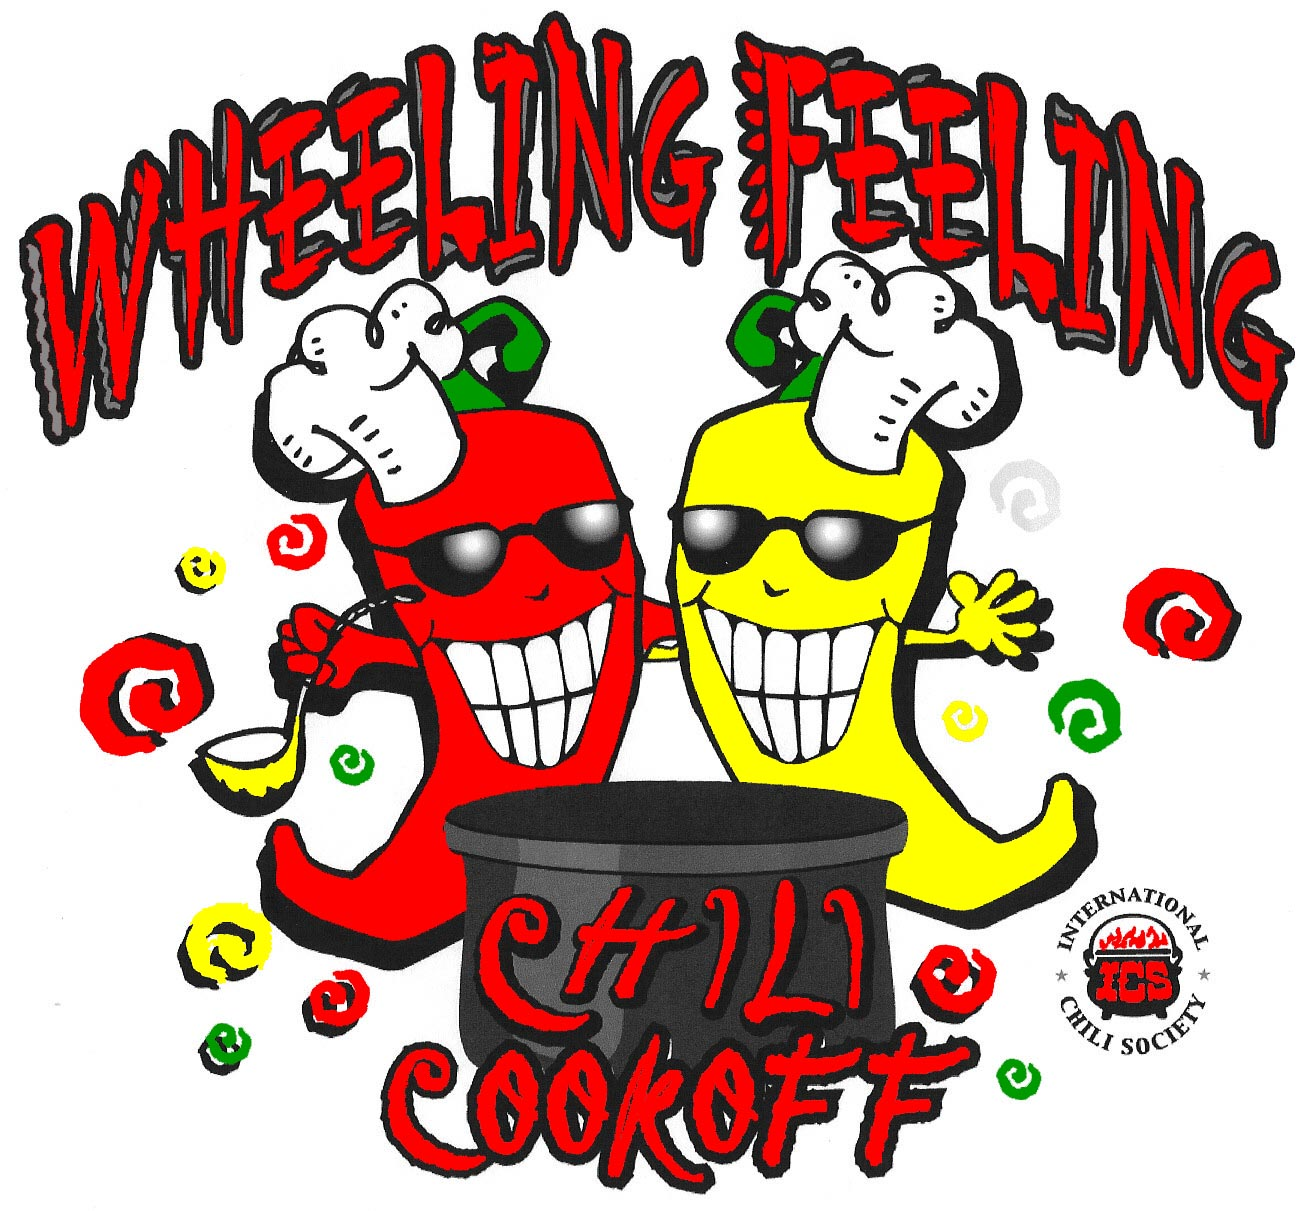 Clipart 1st annual chili cook off color jpg library library Wheeling Feeling Chili Cookoff - Almost Heaven - West Virginia jpg library library